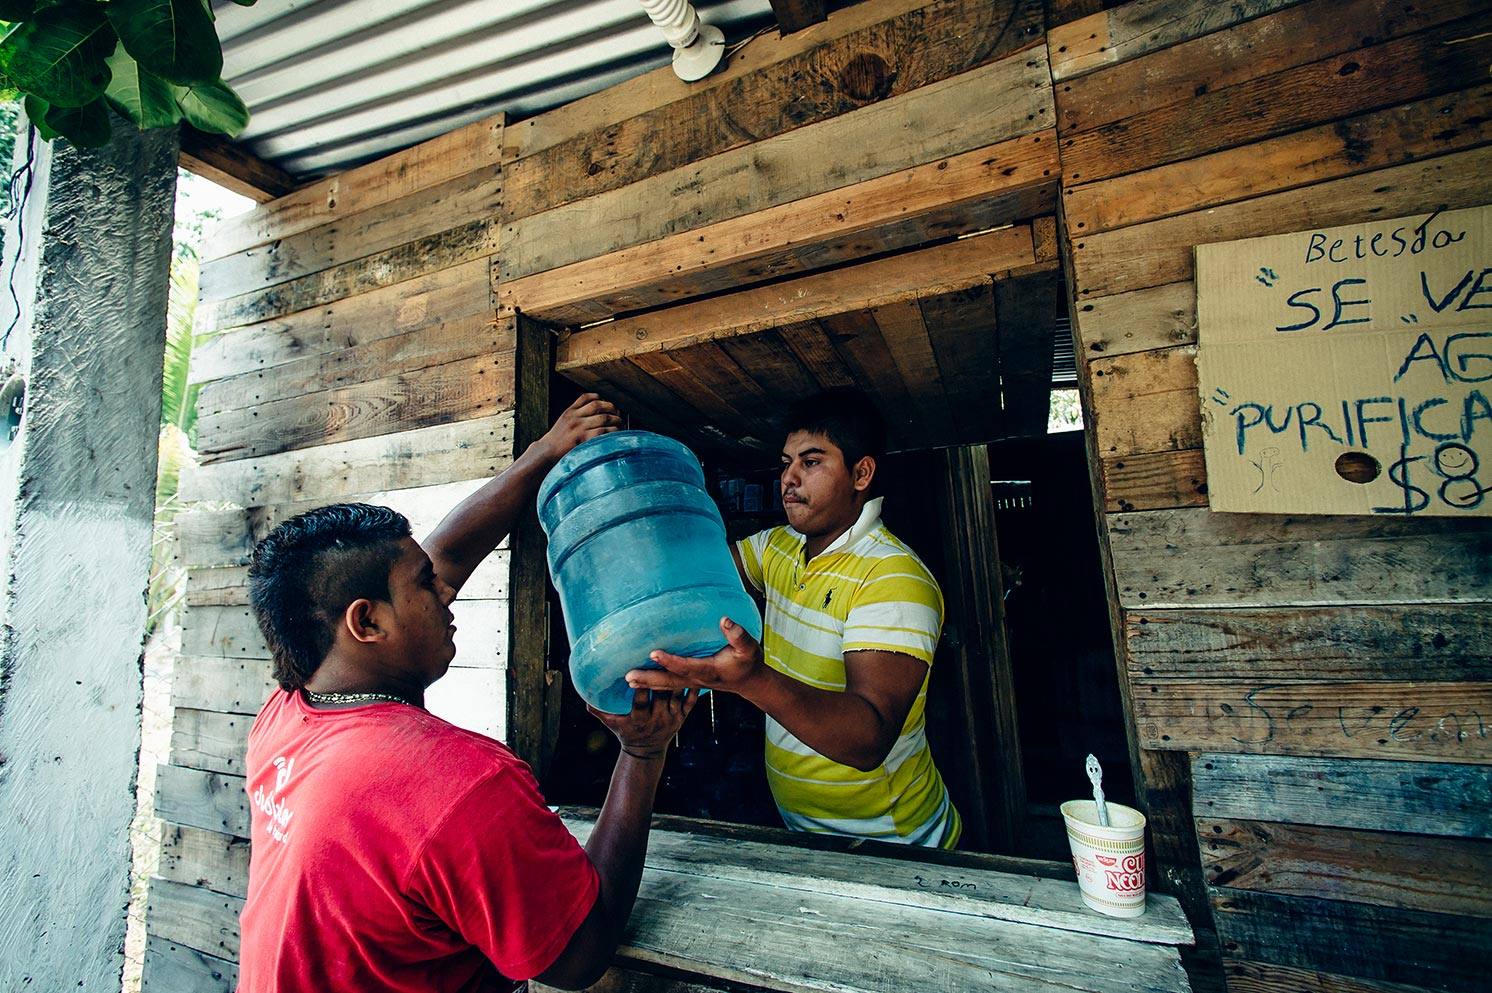 A man collects water to distribute to another community in Mexico.